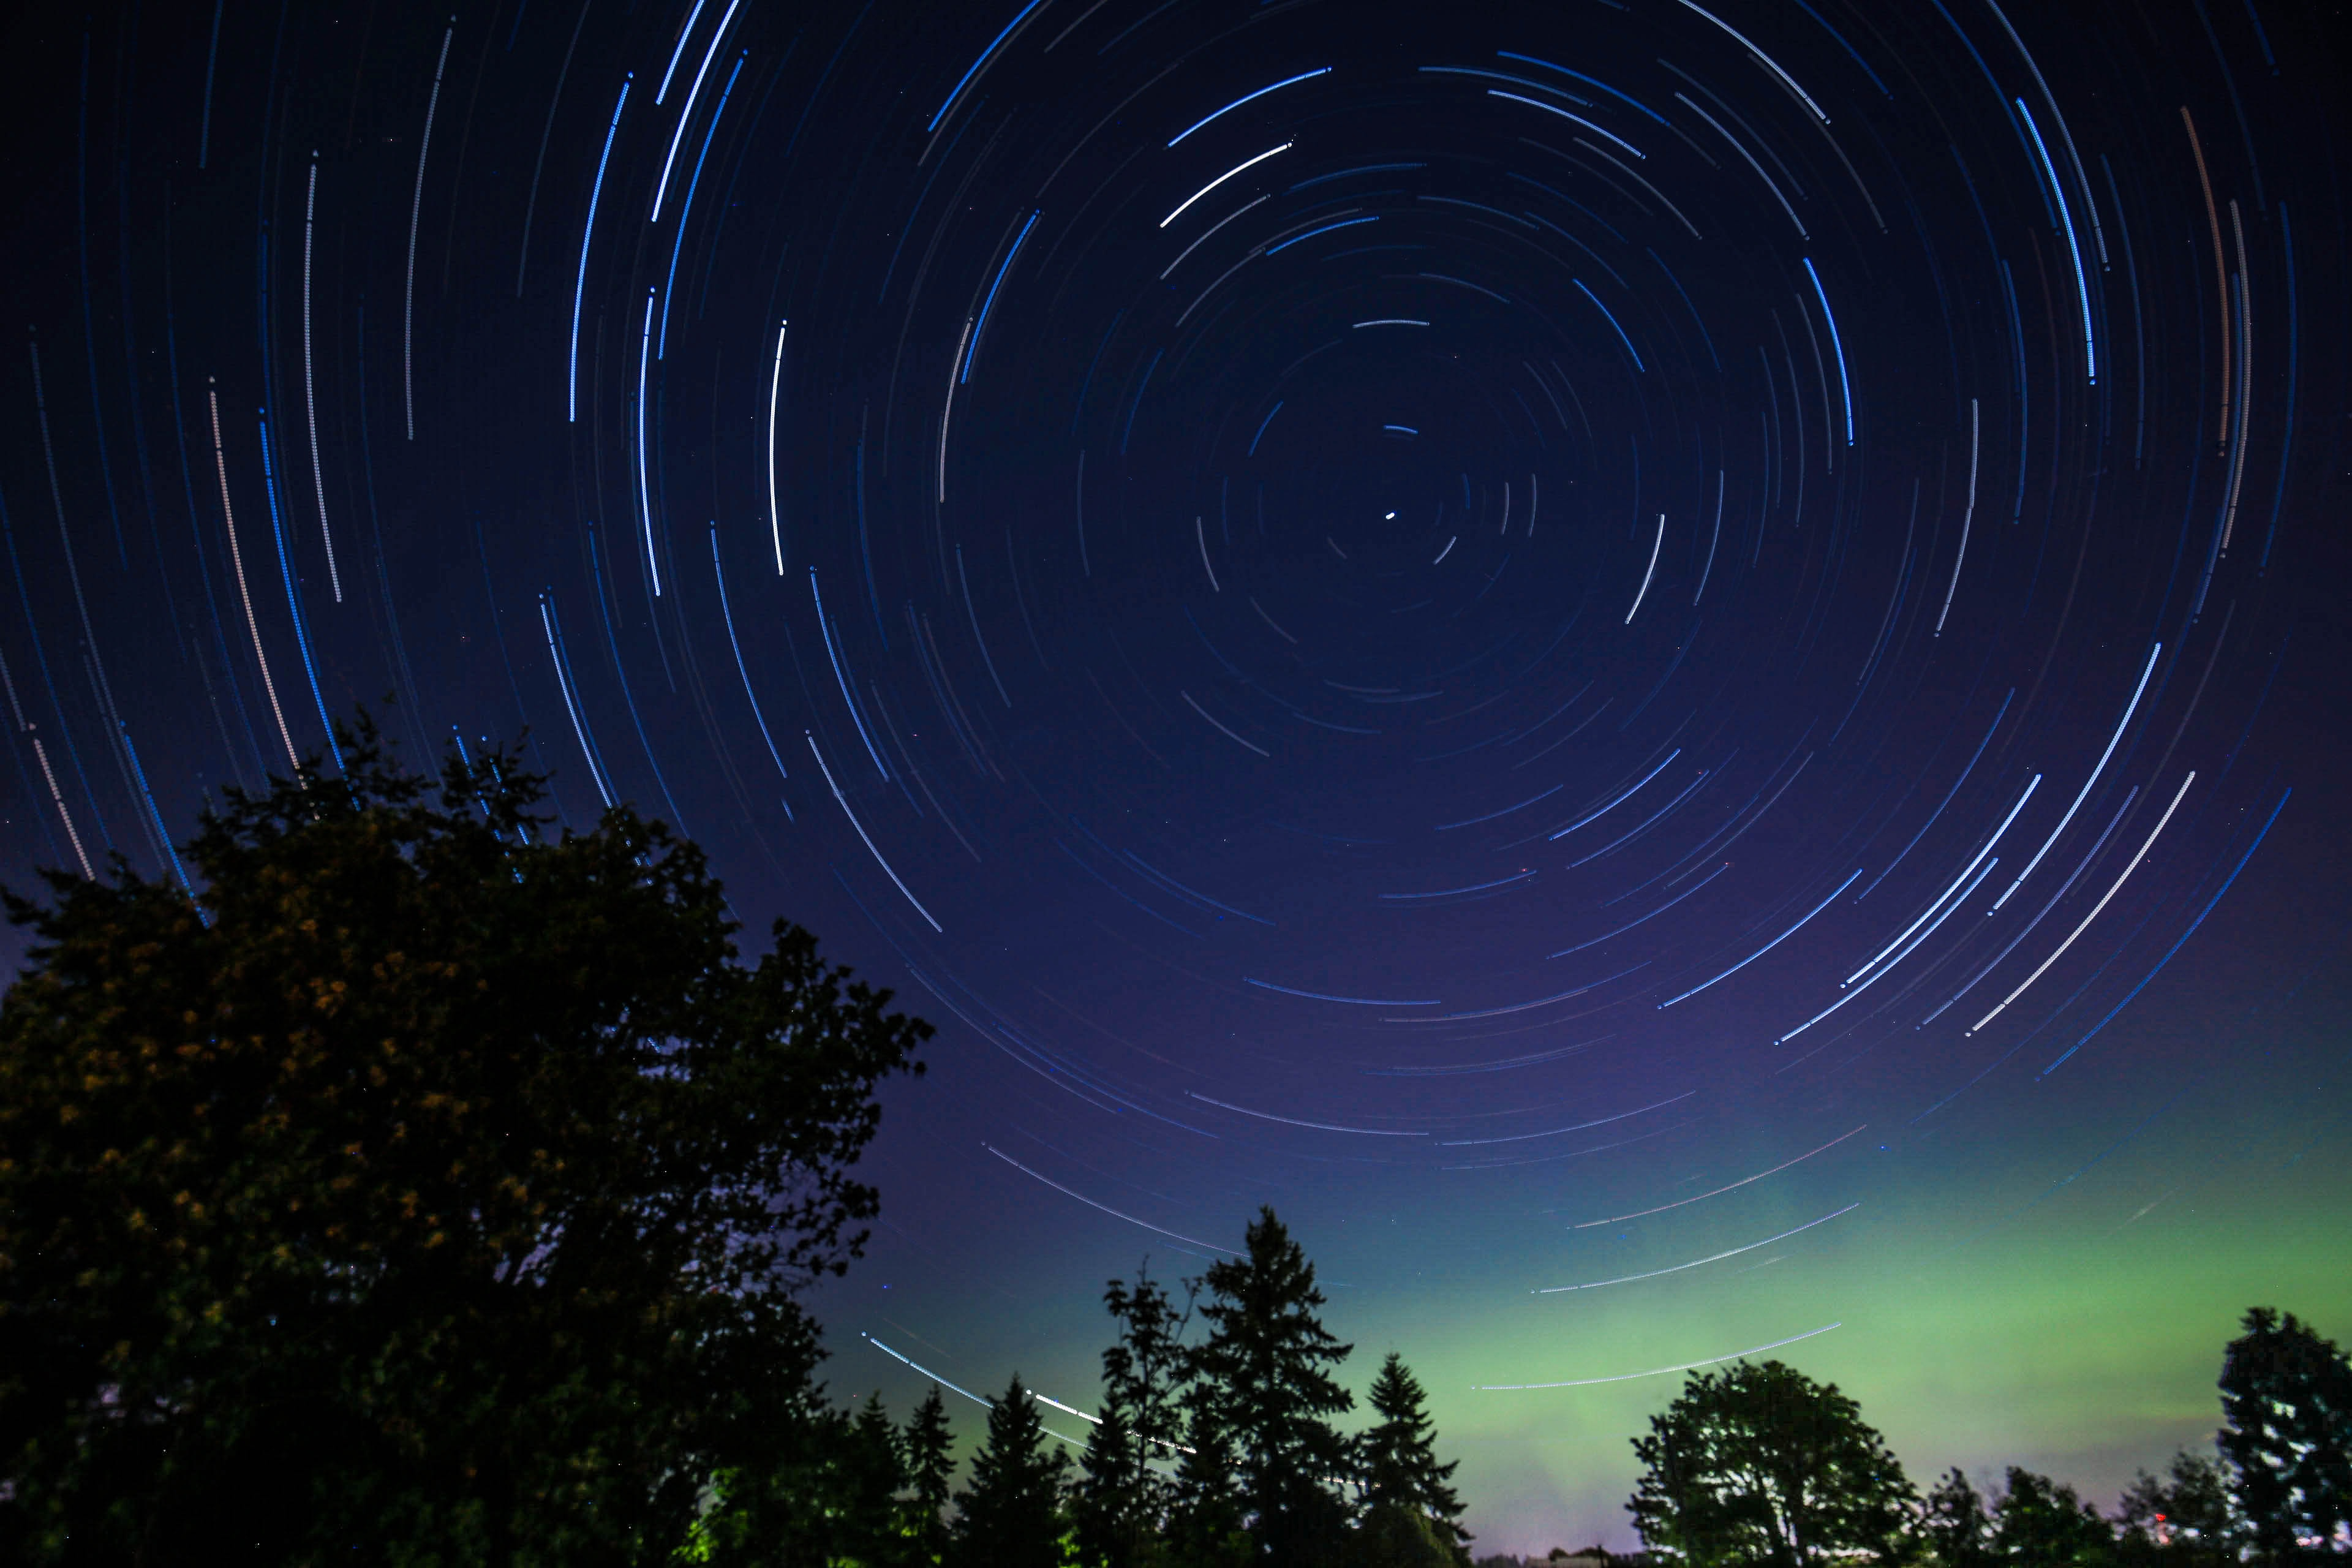 Circular shapes formed by star moving across the night sky